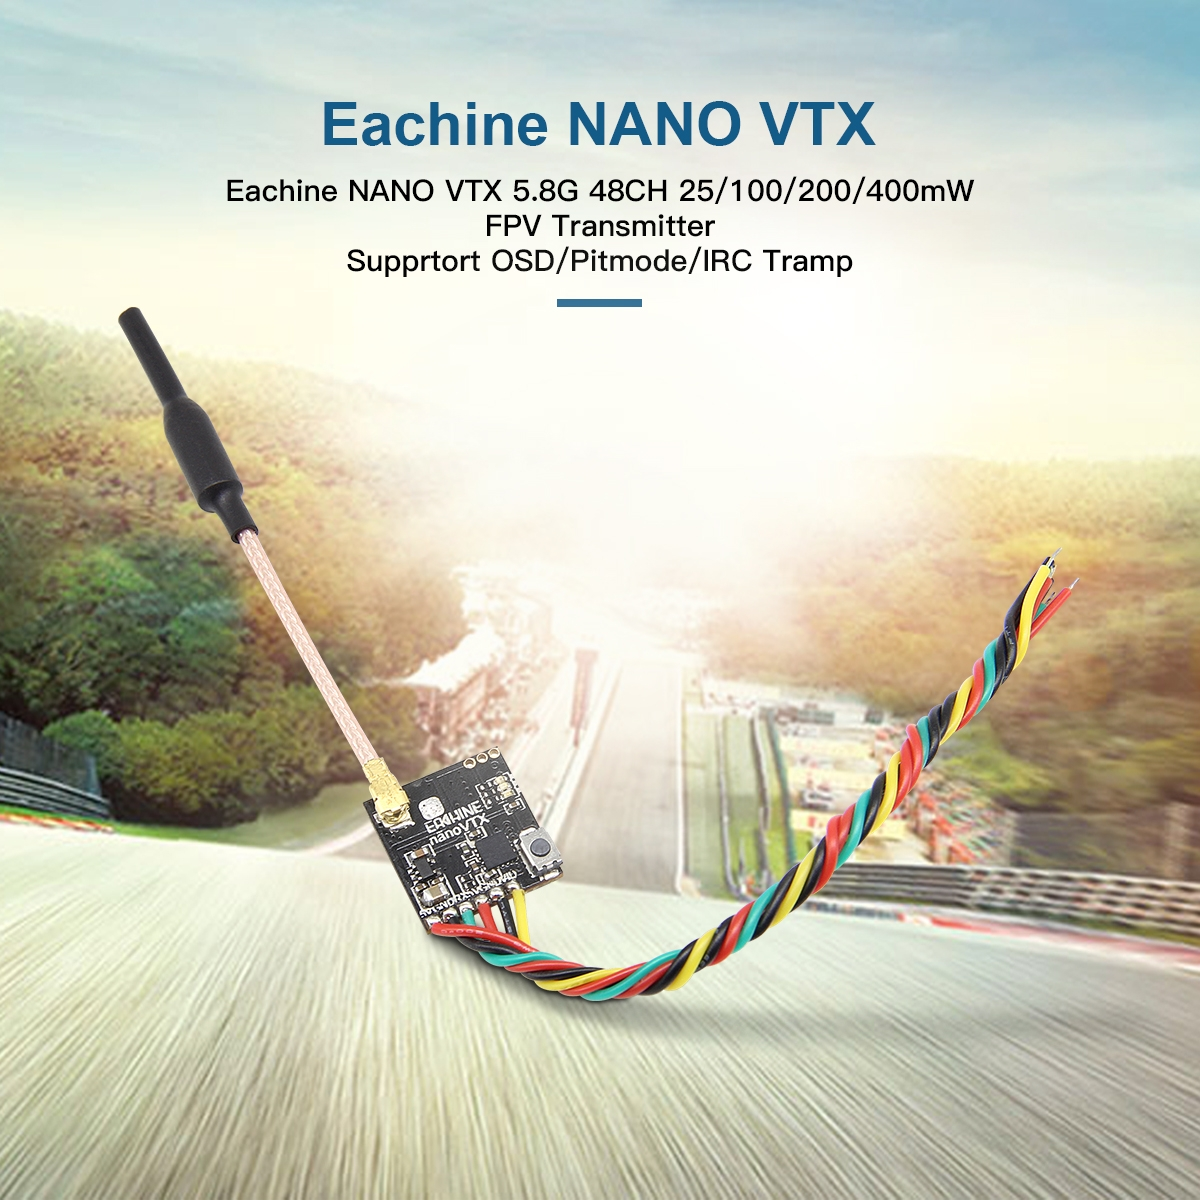 Eachine NANO VTX 5.8GHz 48CH FPV Transmitter With Runcam Racer Nano CMOS 700TVL 2.1mm FPV Camera Combo for FPV Racer Drone